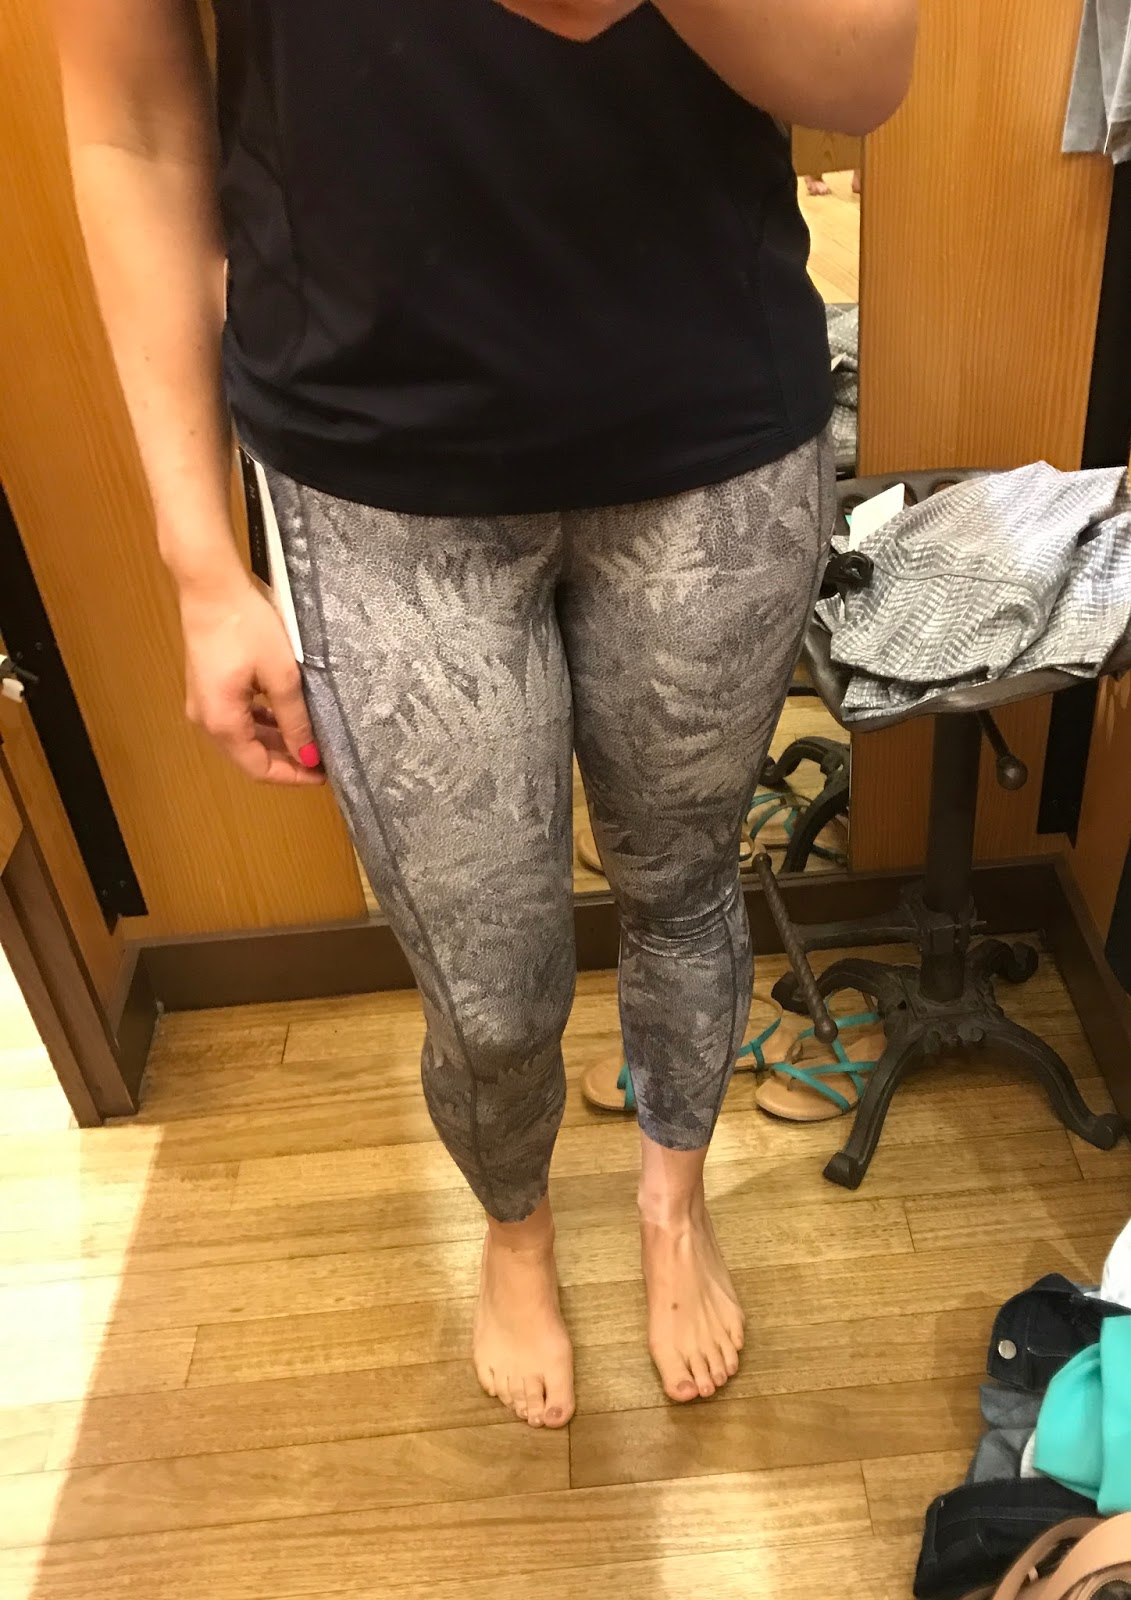 https://api.shopstyle.com/action/apiVisitRetailer?url=https%3A%2F%2Fshop.lululemon.com%2Fp%2Fwomen-pants%2FFast-And-Free-7-8th-Tight%2F_%2Fprod8351449%3Frcnt%3D2%26N%3D1z13ziiZ7z5%26cnt%3D45%26color%3DLW5AN4S_029035&site=www.shopstyle.ca&pid=uid6784-25288972-7